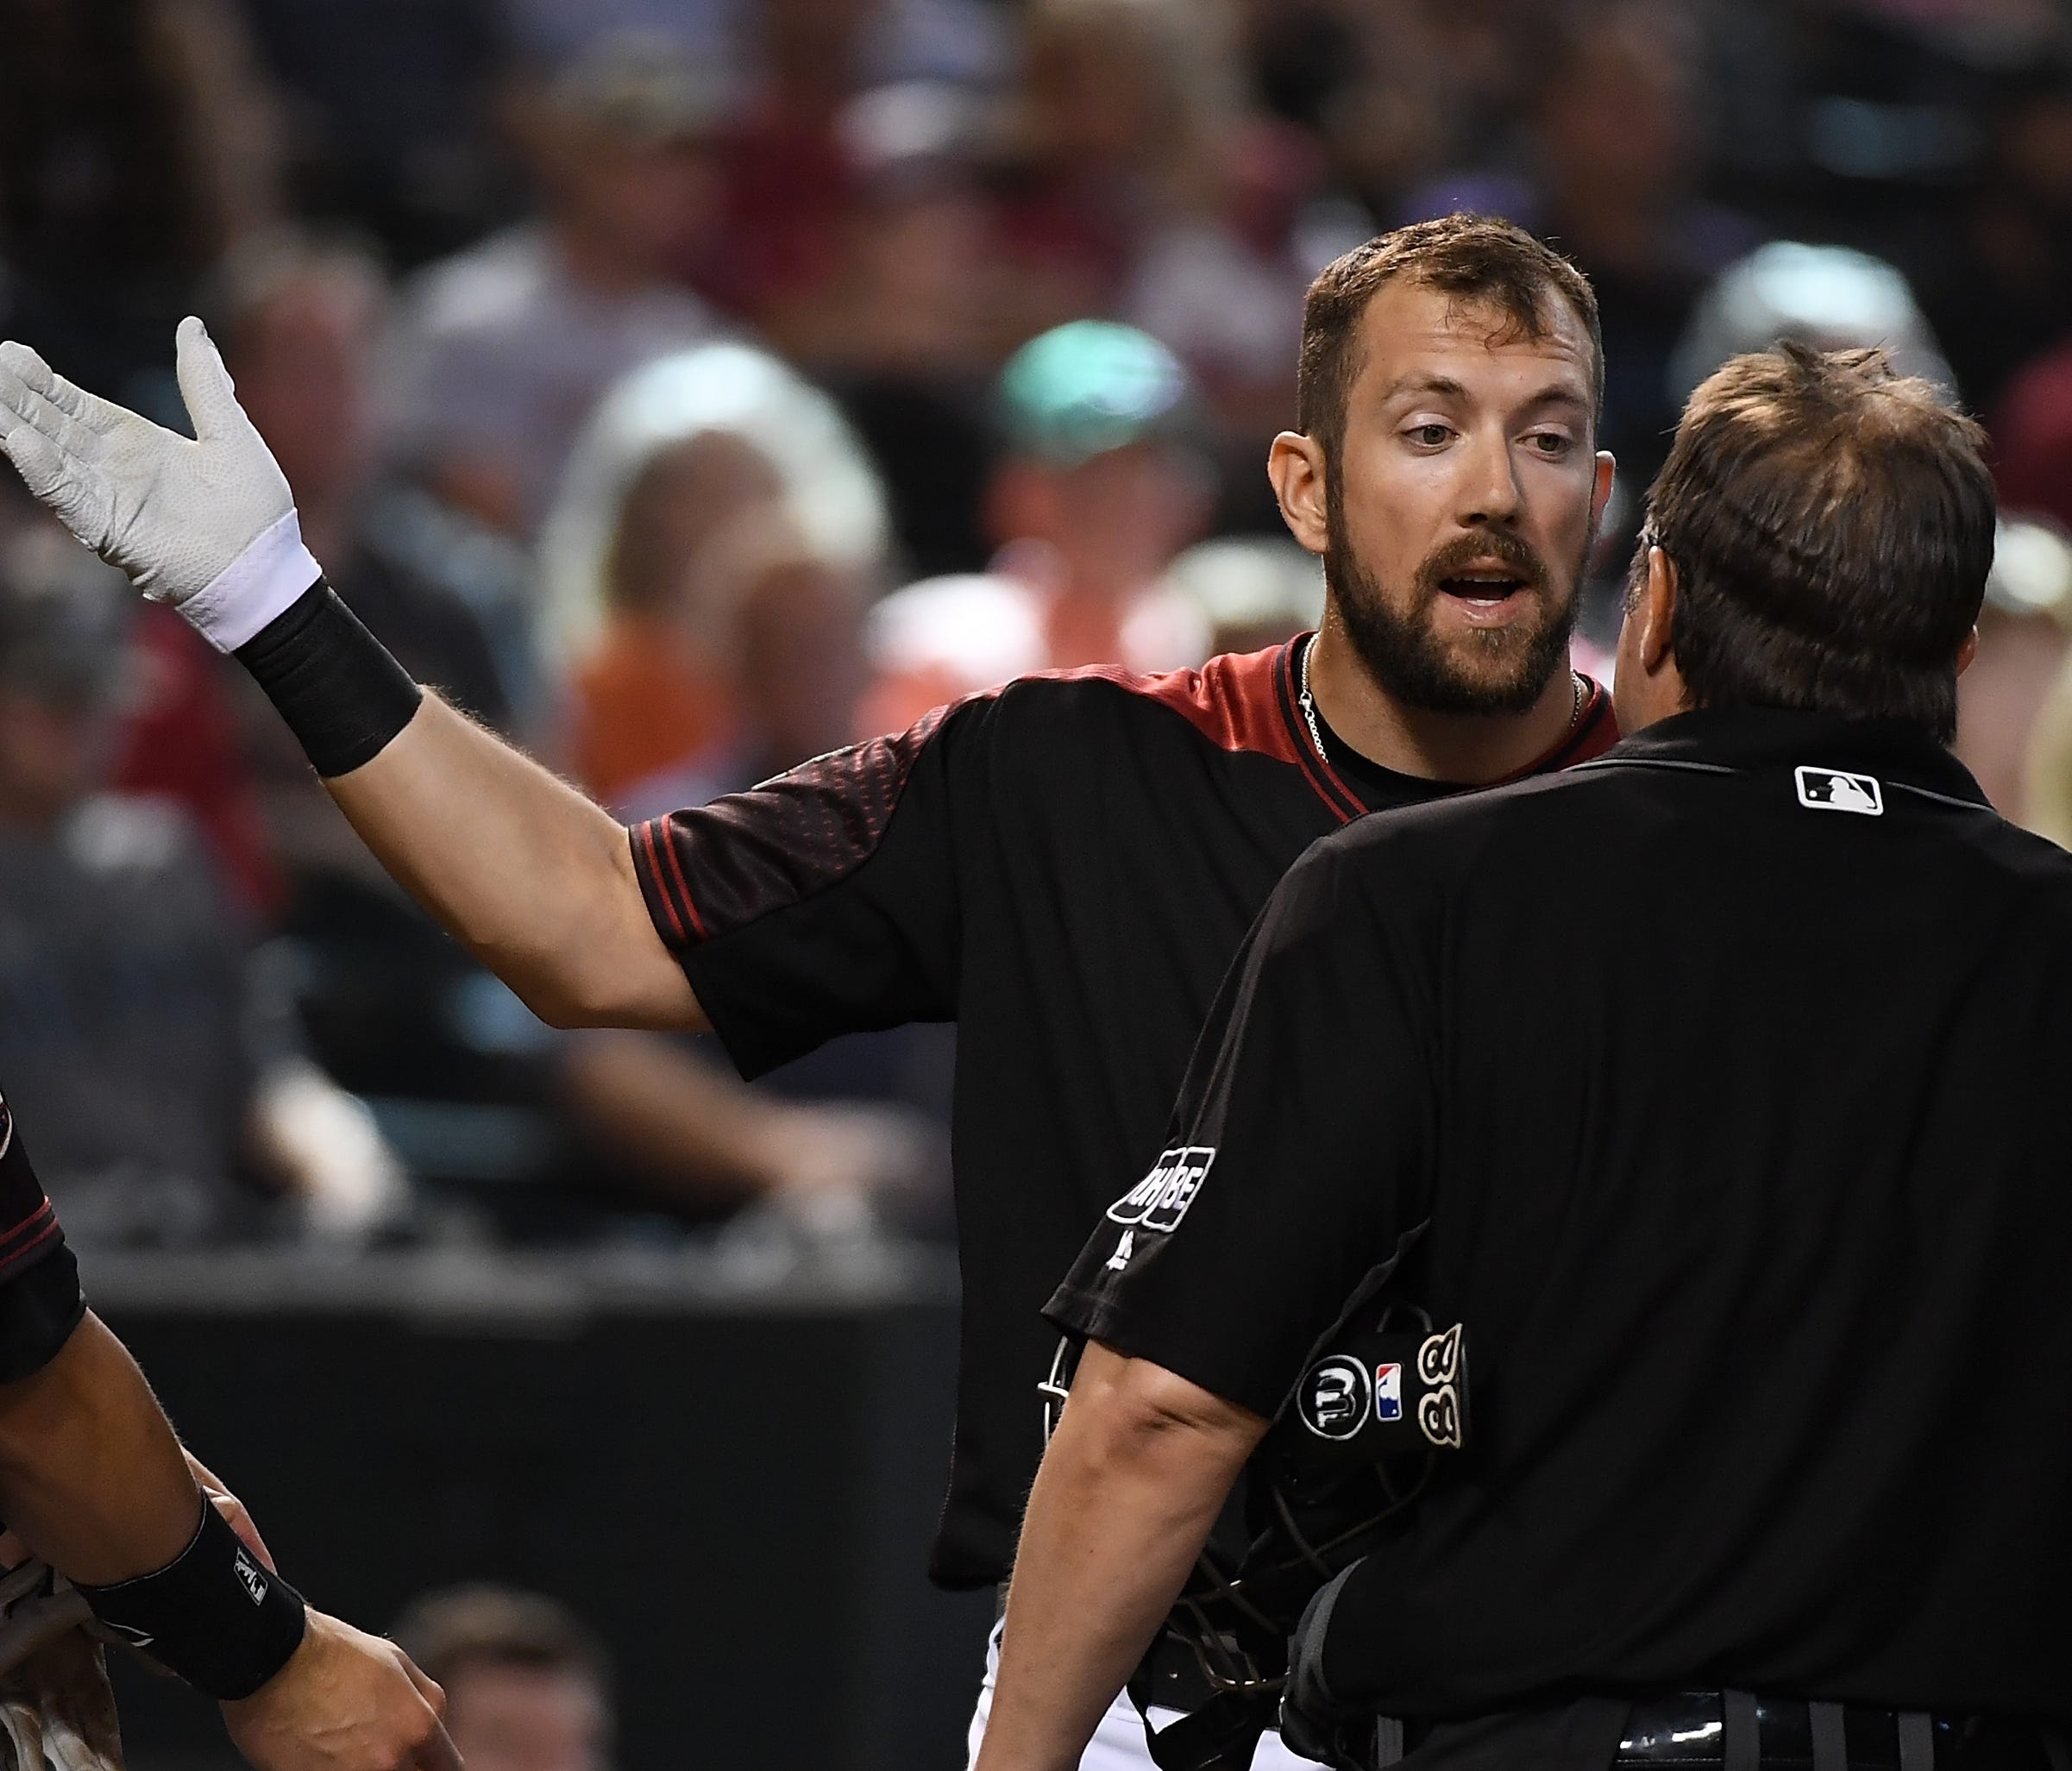 While player-umpire tensions can boil over - such as this ejection of Steven Souza Jr. by Doug Eddings - most players prefer retaining the human element.